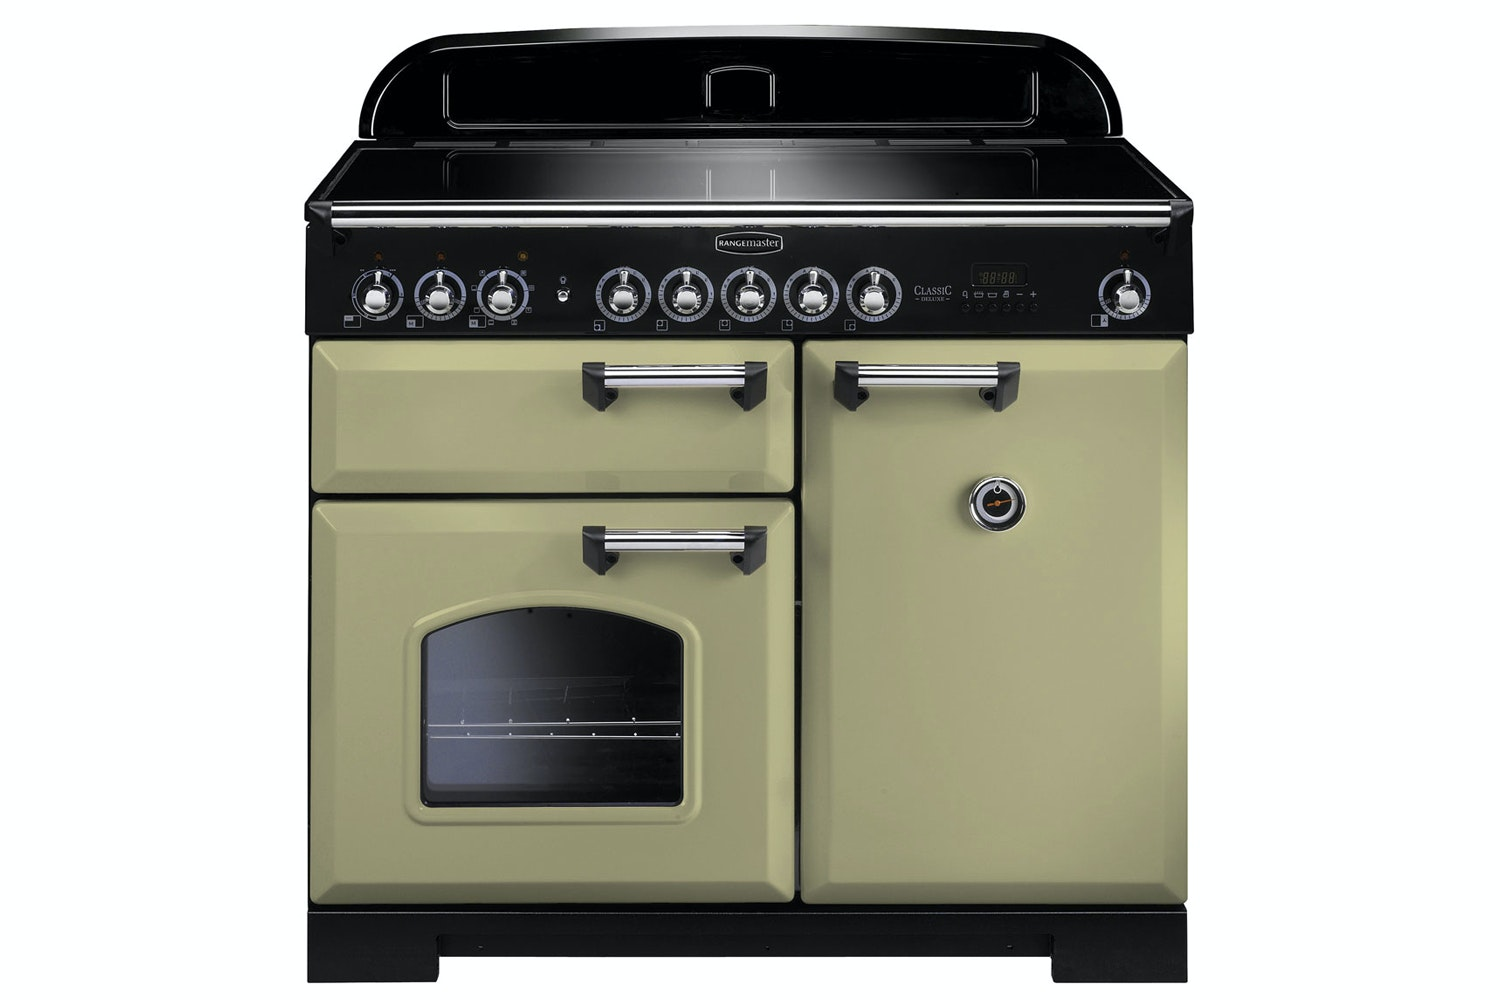 Rangemaster Classic Deluxe 100cm Induction Range Cooker | CDL100EIOG/C | Olive Green